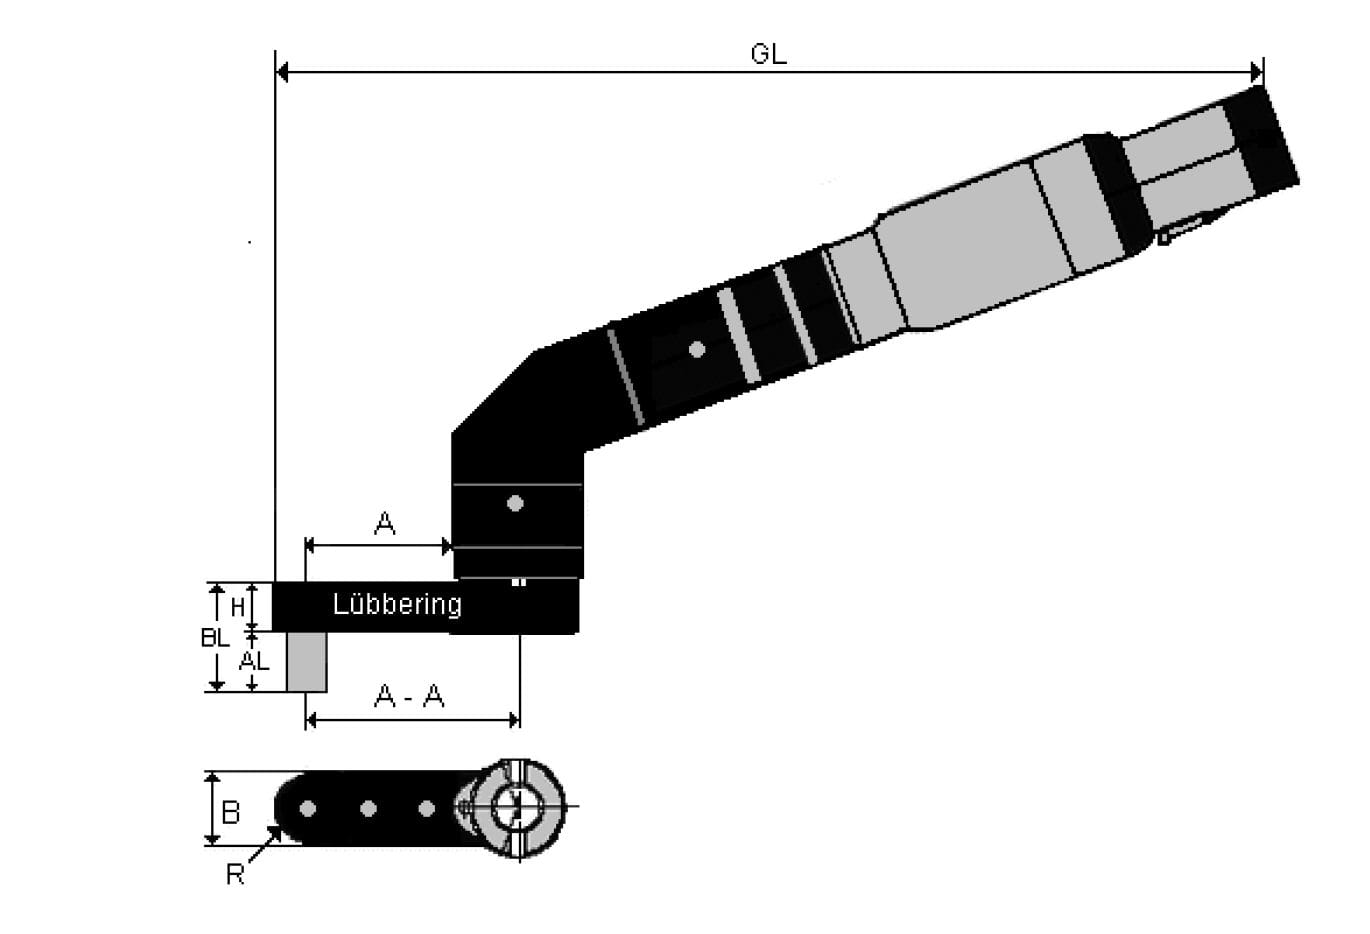 Lubbering installation tool with socket torque control 1/4